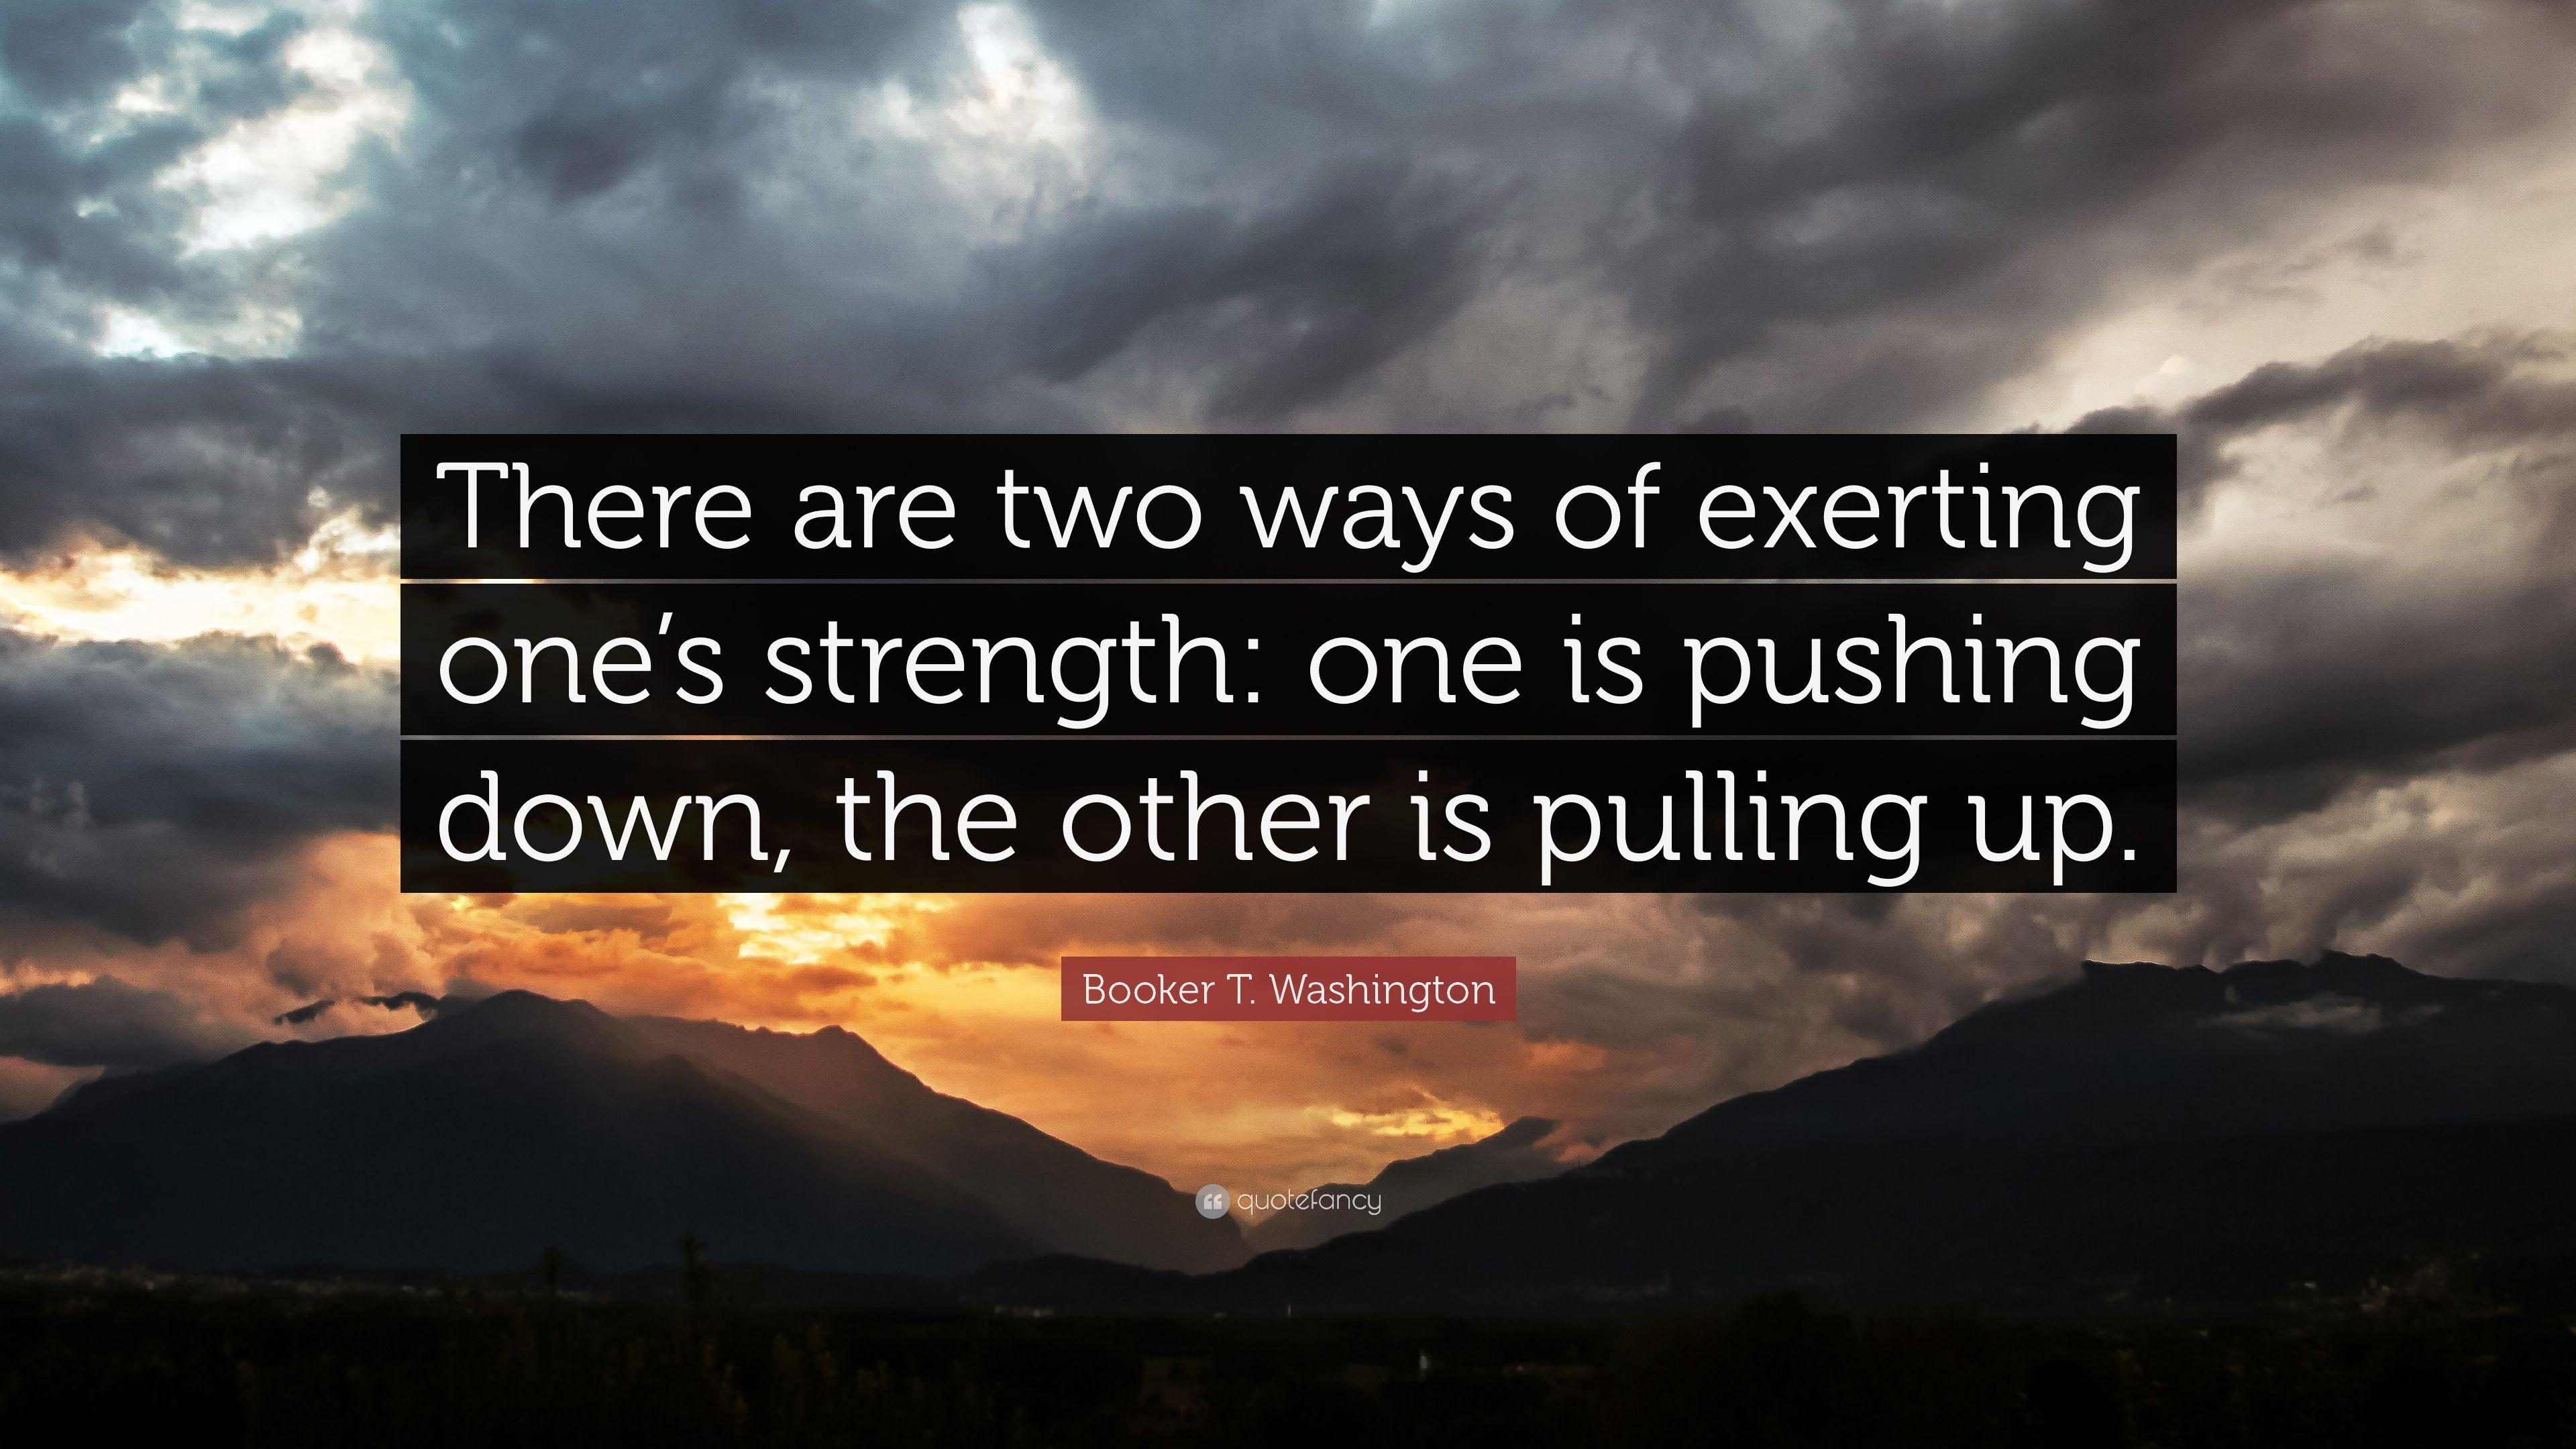 booker t washington quotes push pull - Google Search